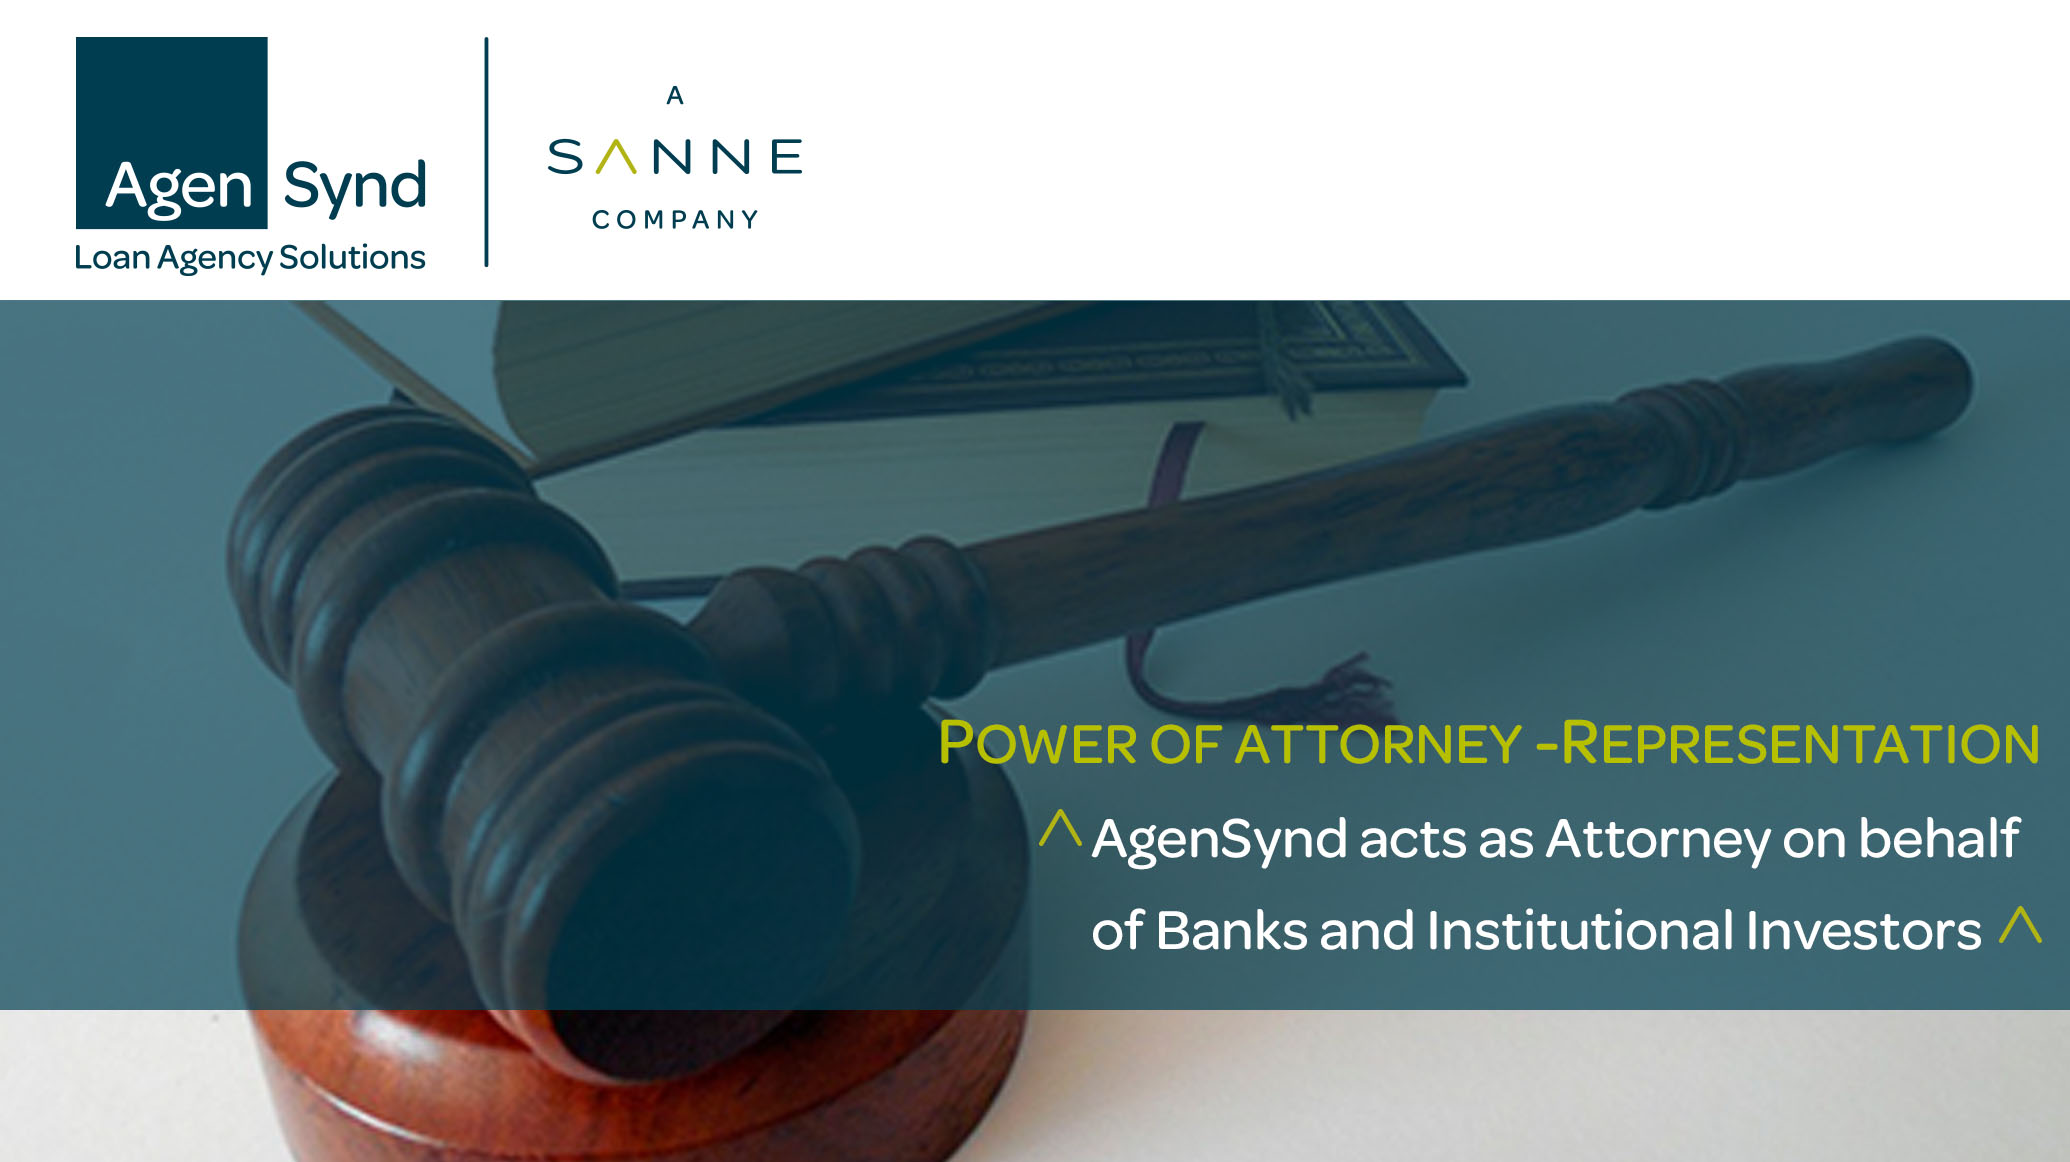 AgenSynd ROLE OF ATTORNEY